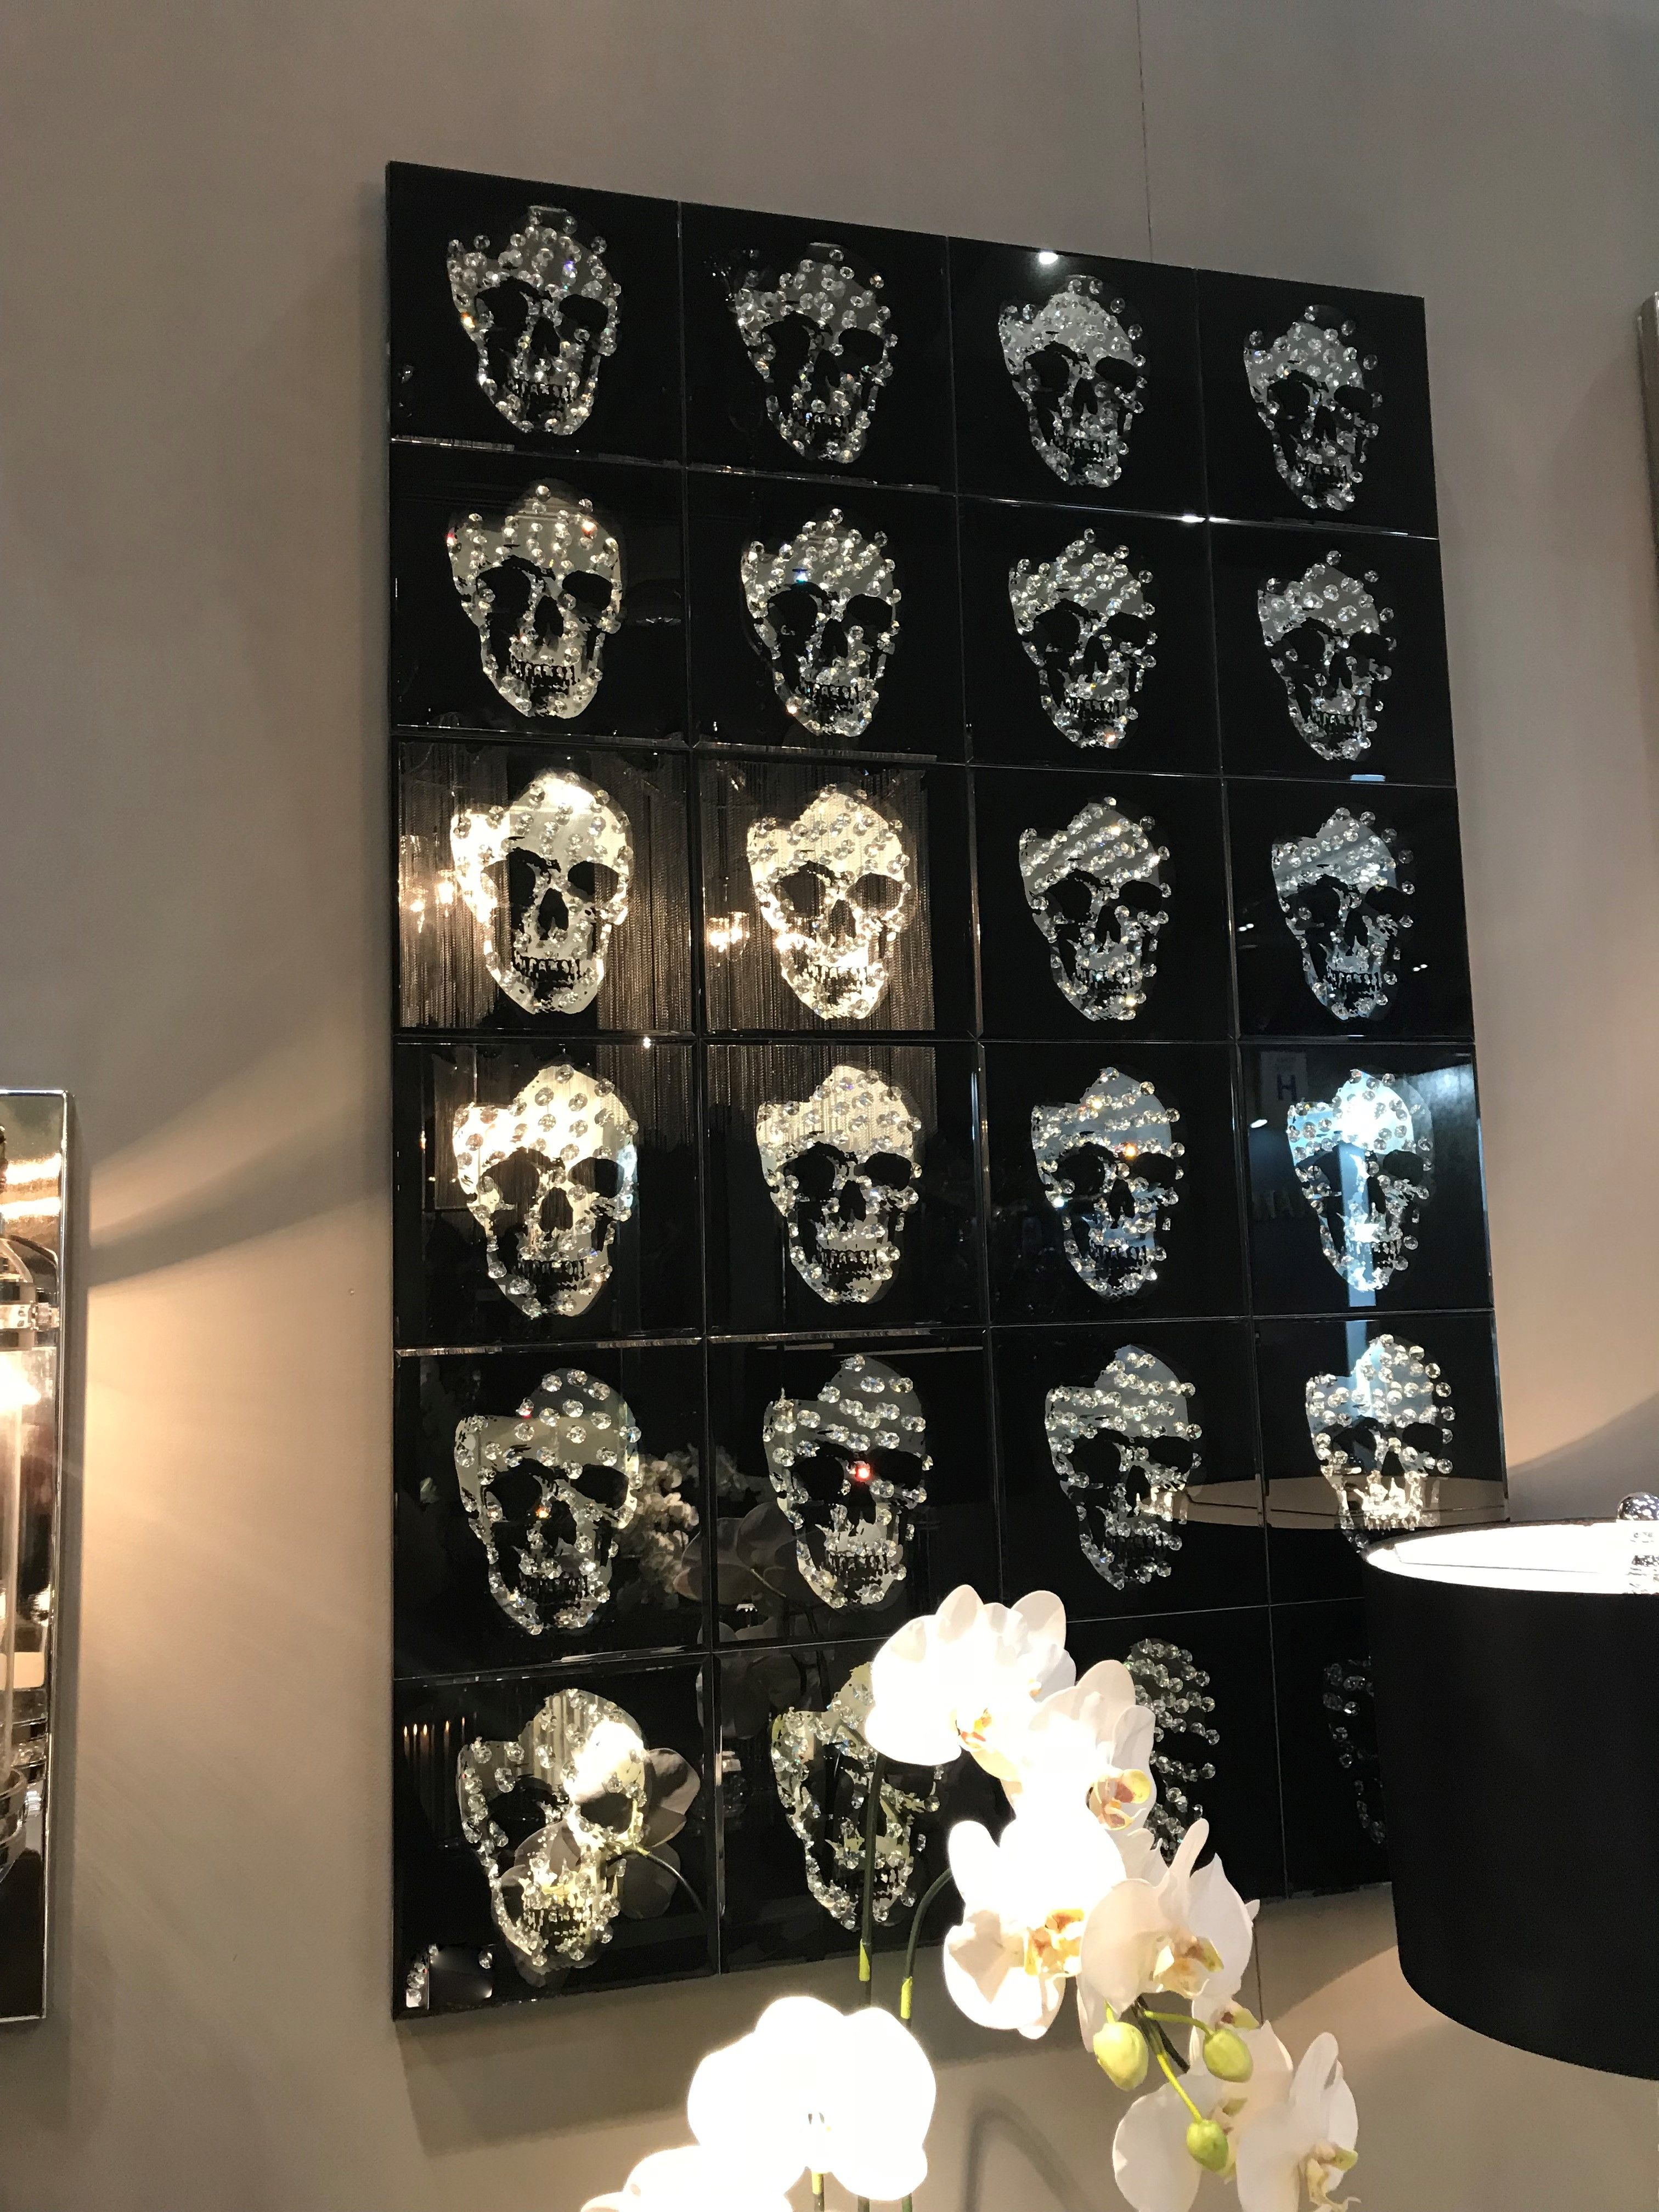 Skull With Jaw Dropped: This Jaw-dropping Piece Of Skull Art Is Sure To Get